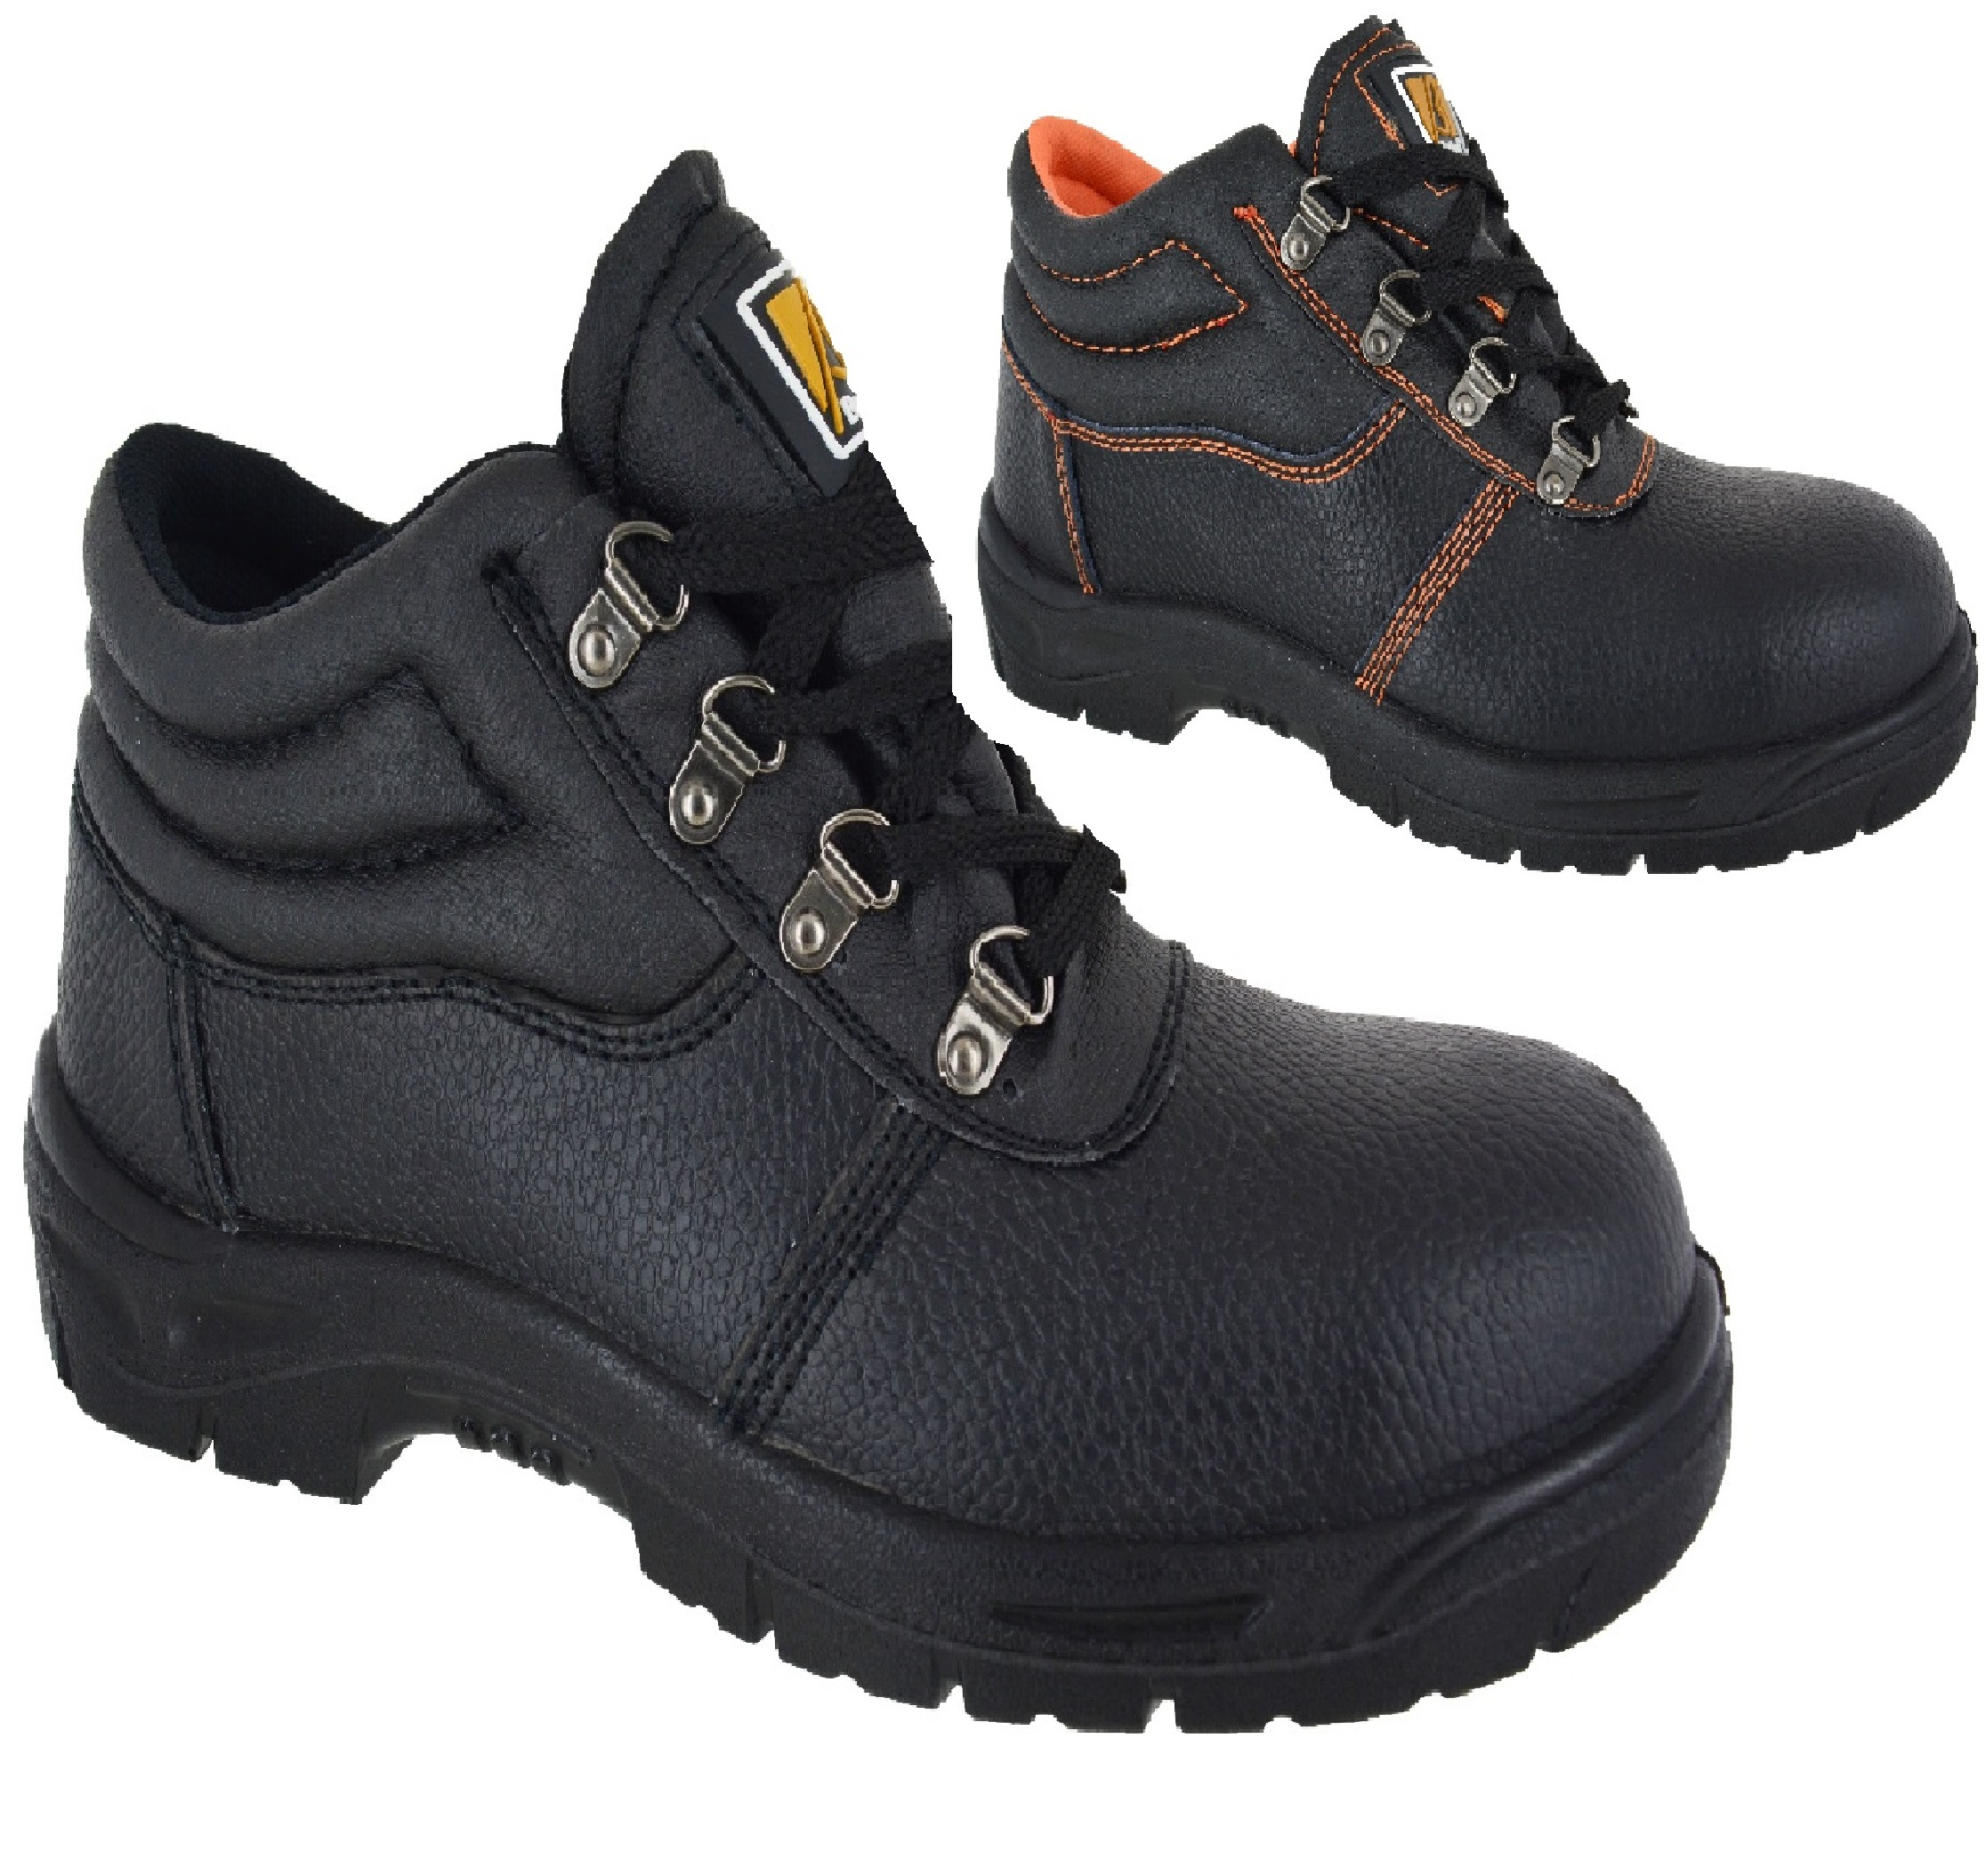 a306844d46 Sentinel MENS STEEL TOE CAP BLACK LEATHER WORK BOOTS SAFETY LACE UP LIGHT  WEIGHT SHOES SZ